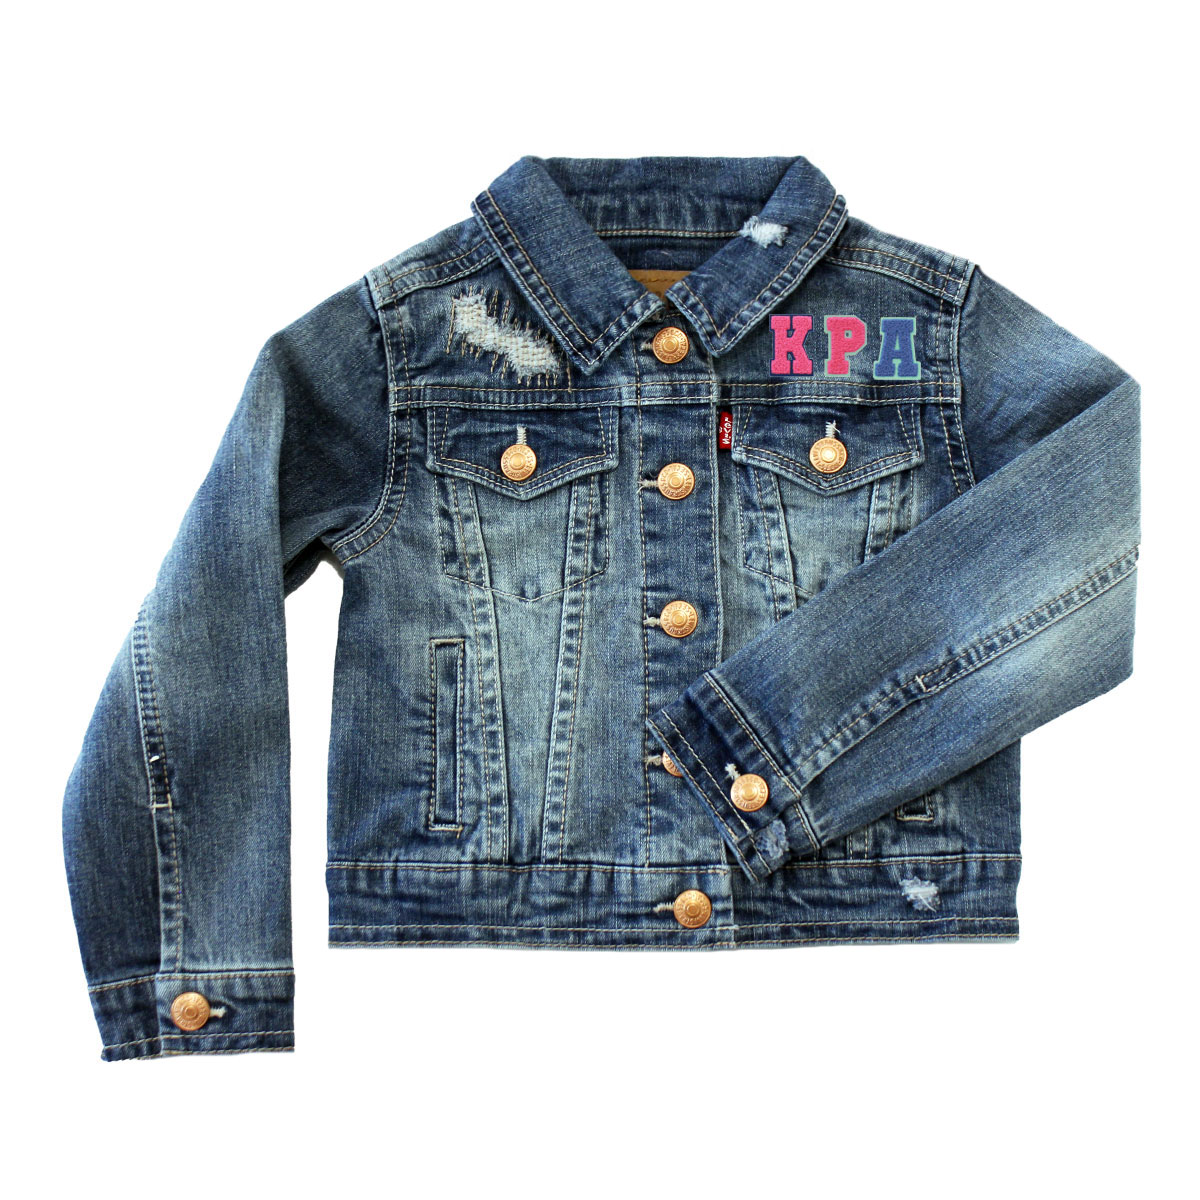 Levi's personalized initials denim trucker jacket